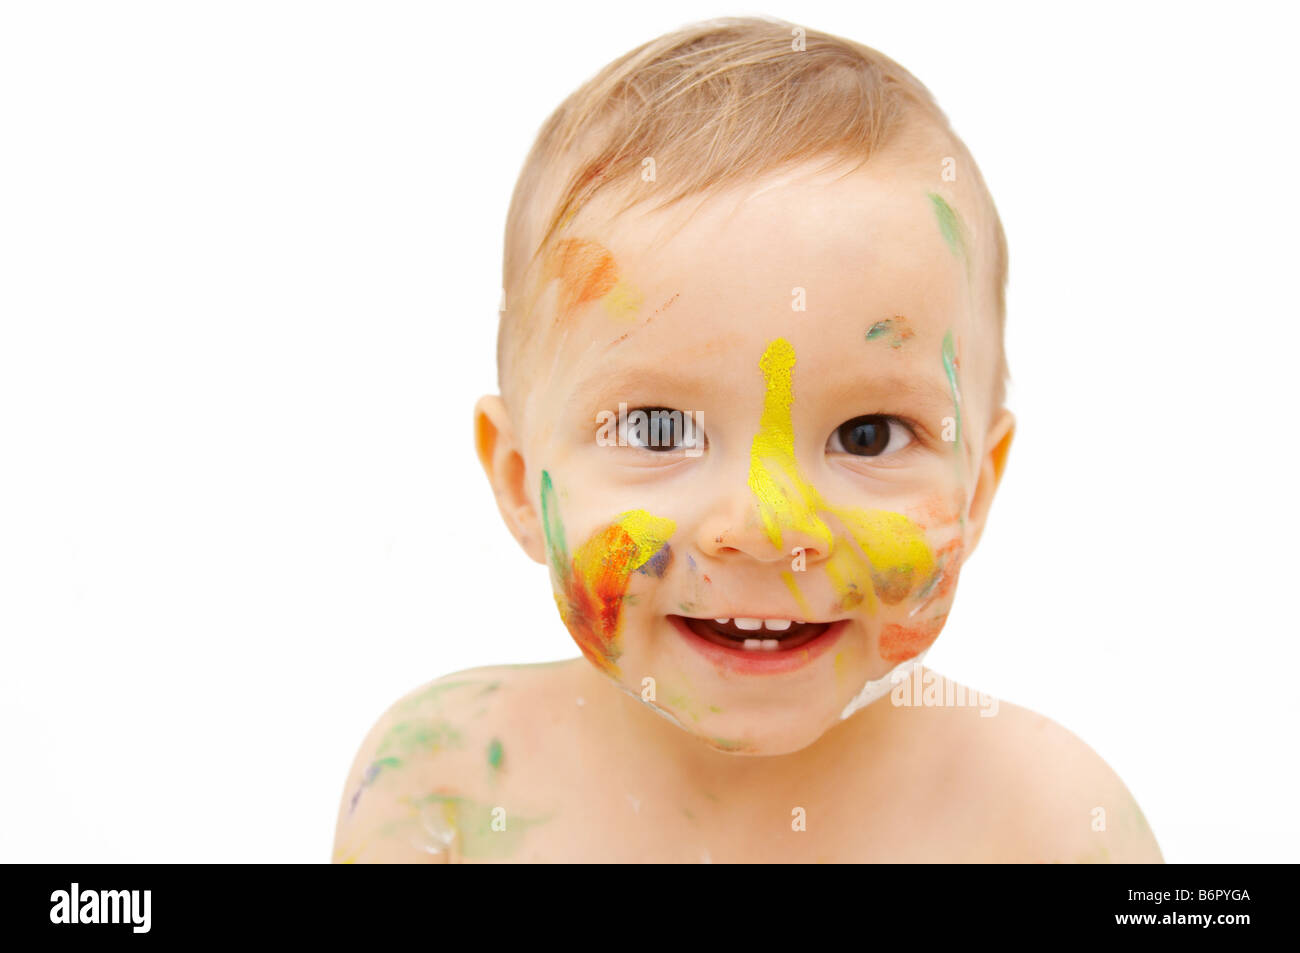 painted baby face - Stock Image